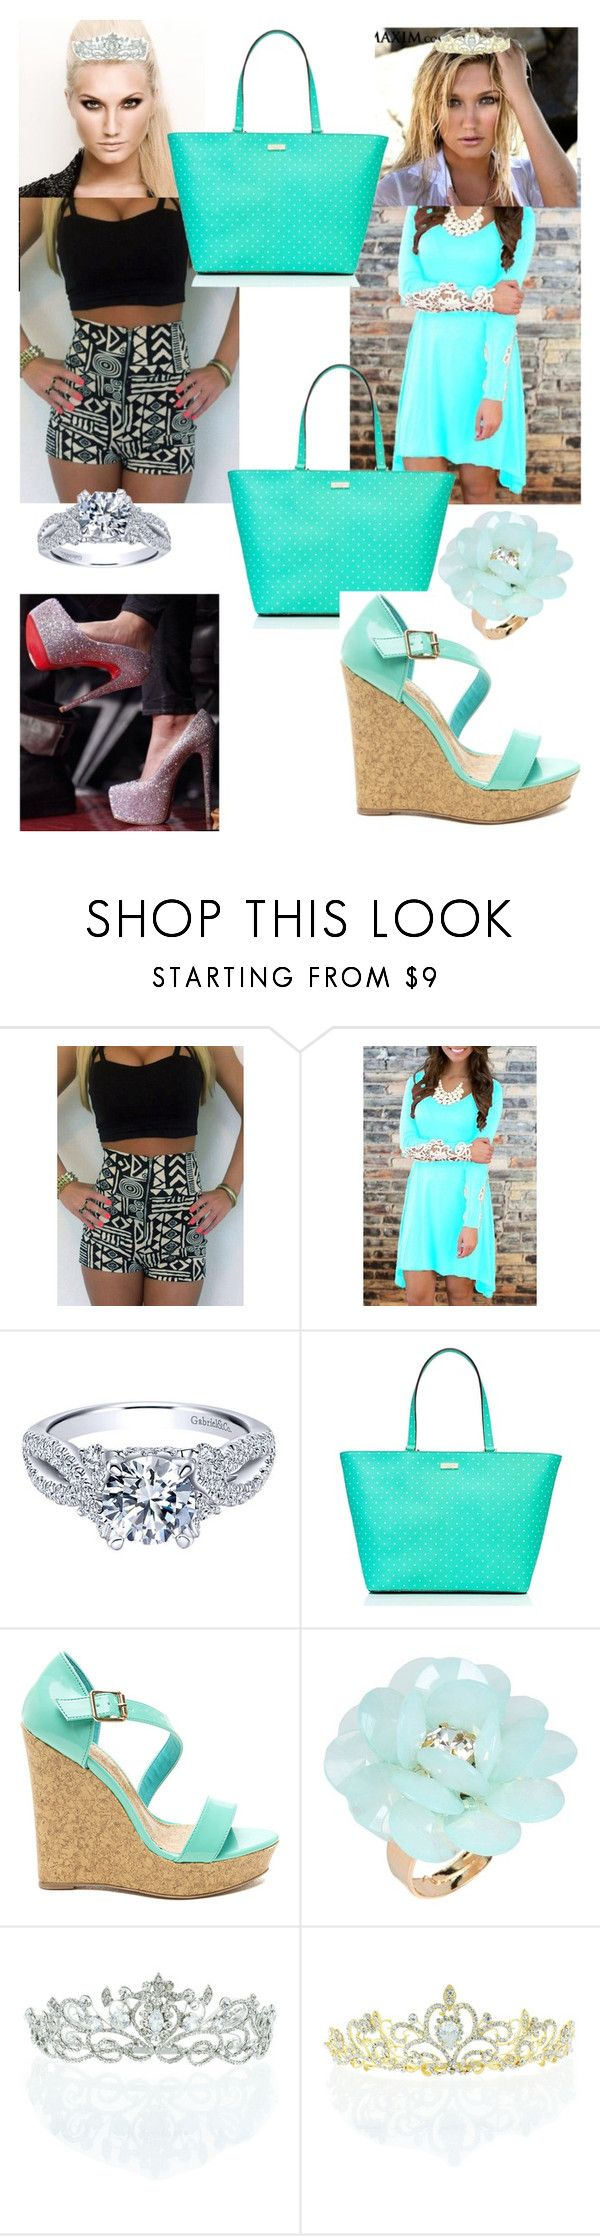 """""""Brooke Hogan's twin sister and d-von Dudley wife"""" by donald3600 ❤ liked on Polyvore featuring Hogan, Kate Spade, Dettagli, Kate Marie, women's clothing, women, female, woman, misses and juniors"""